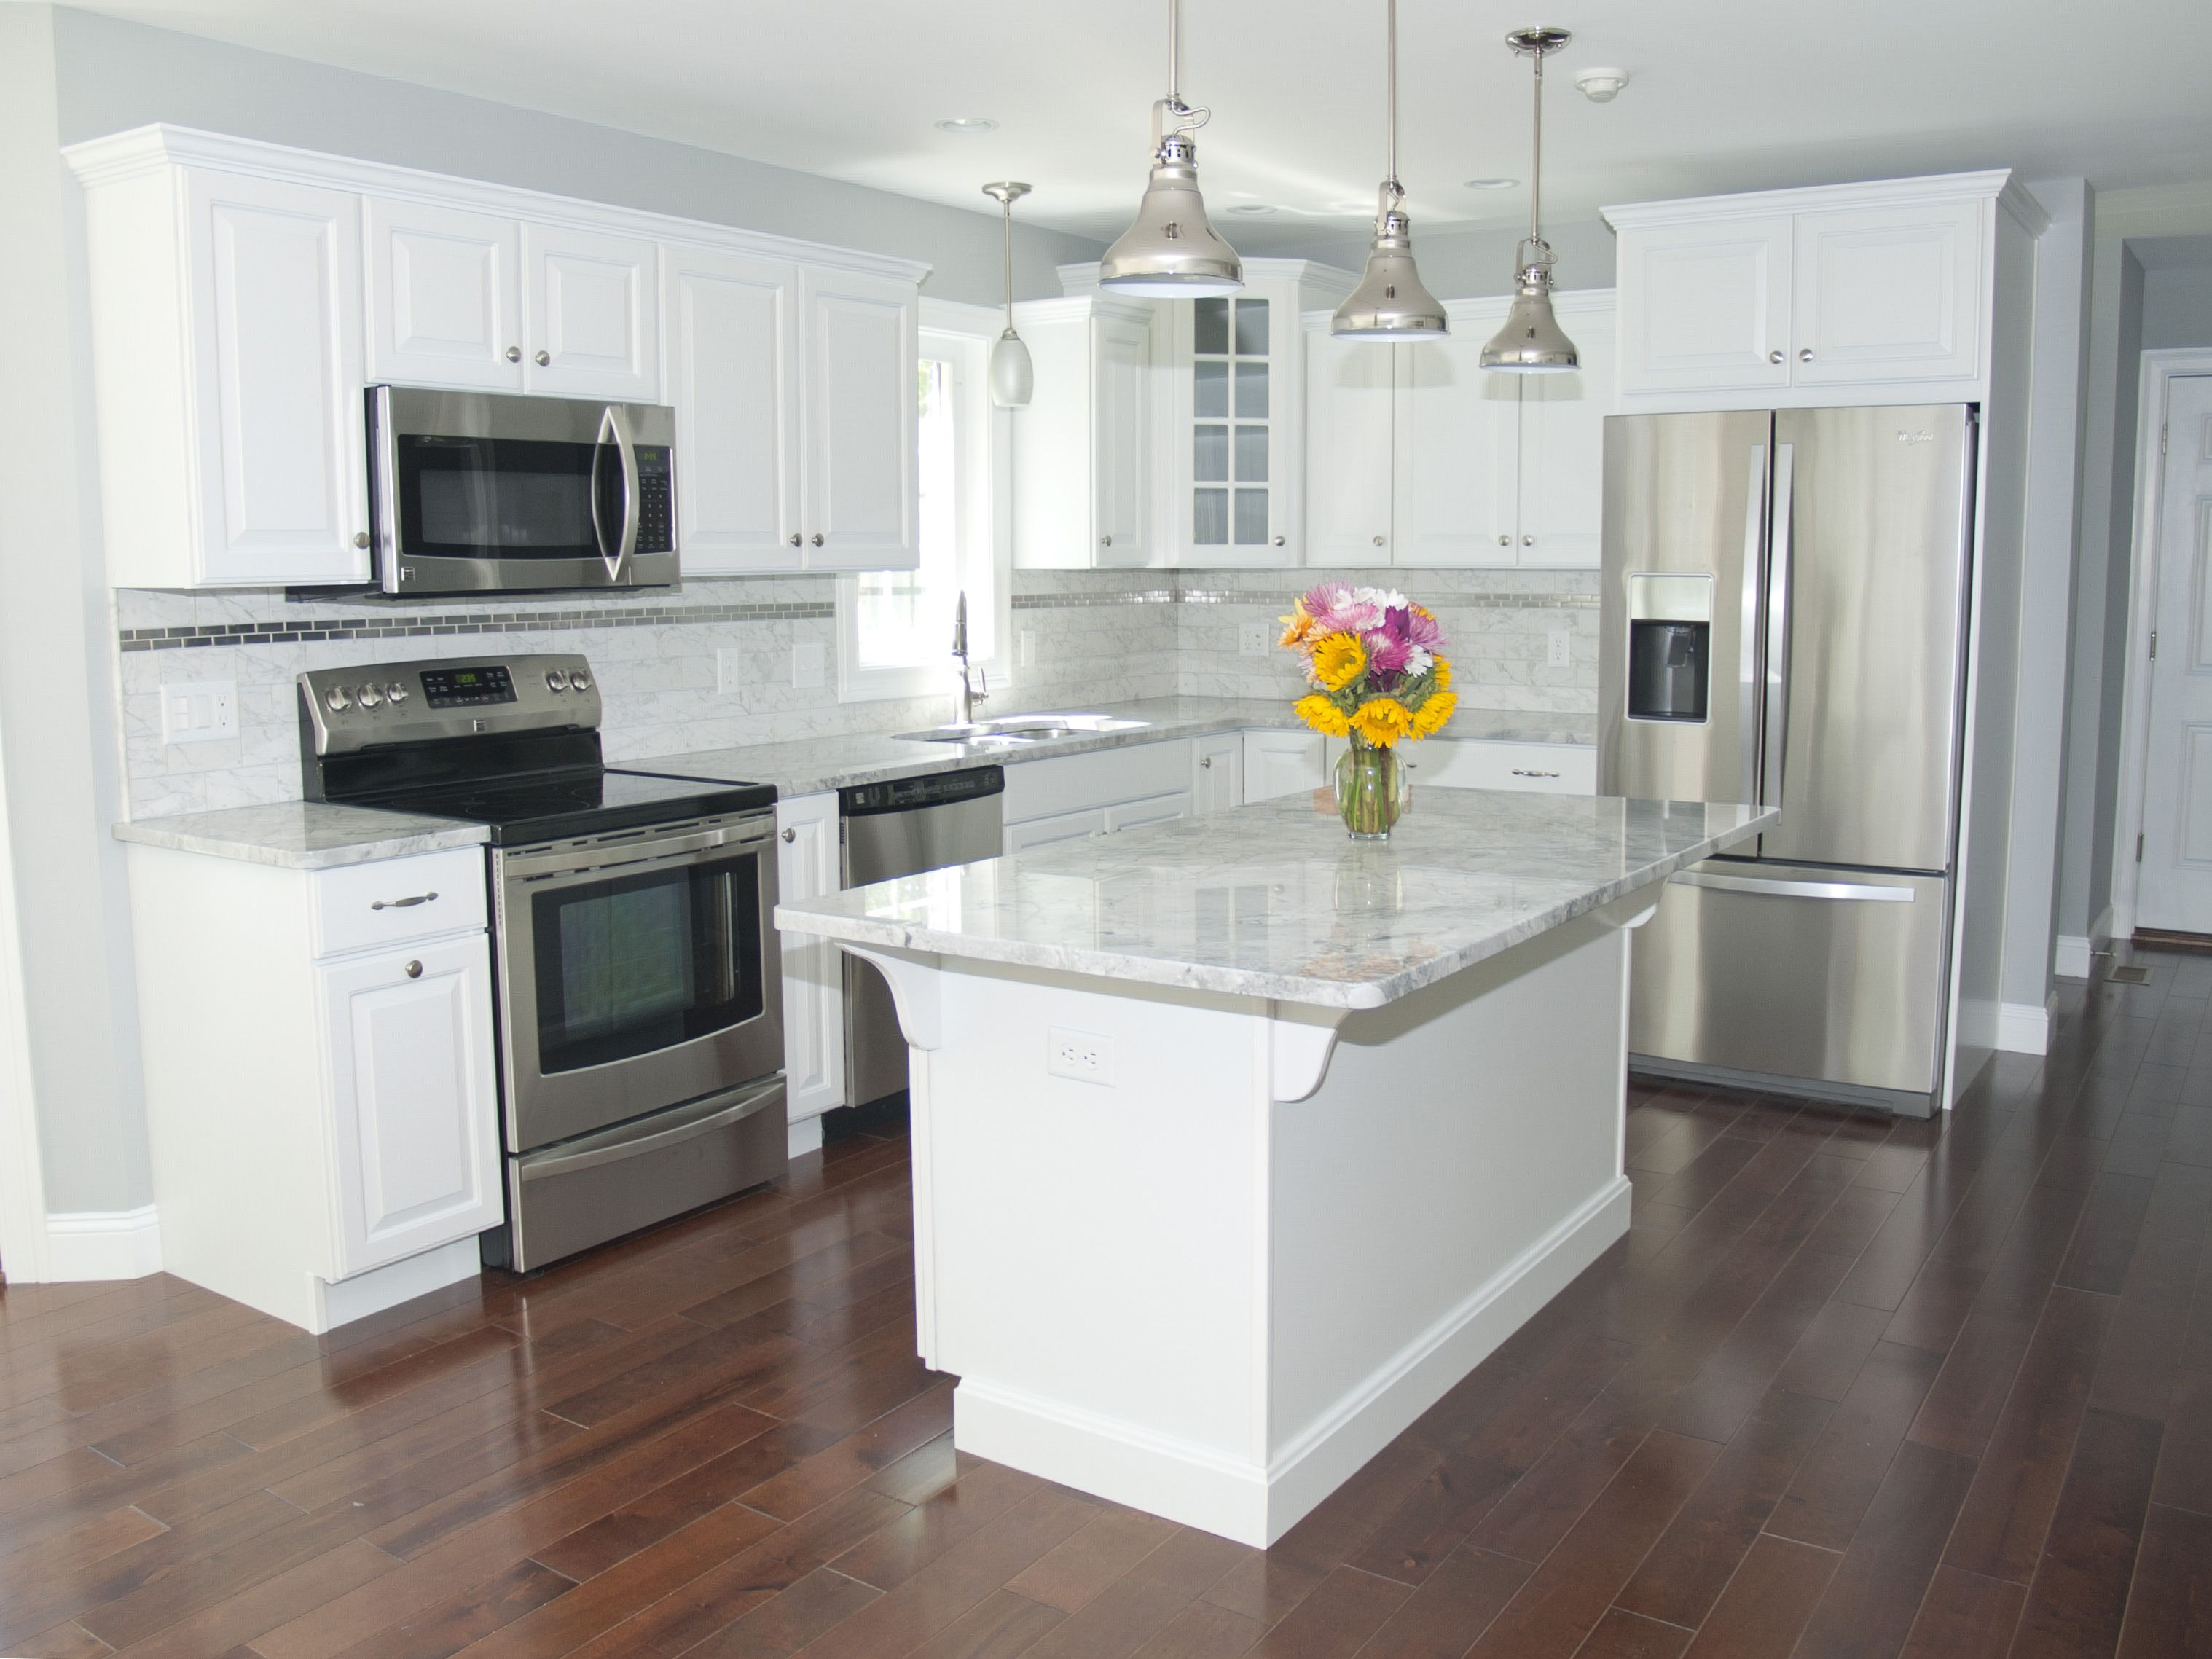 Gorgeous Modern Kitchen With White Cabinets Stainless Steel Liances Pendant Lighting Over The